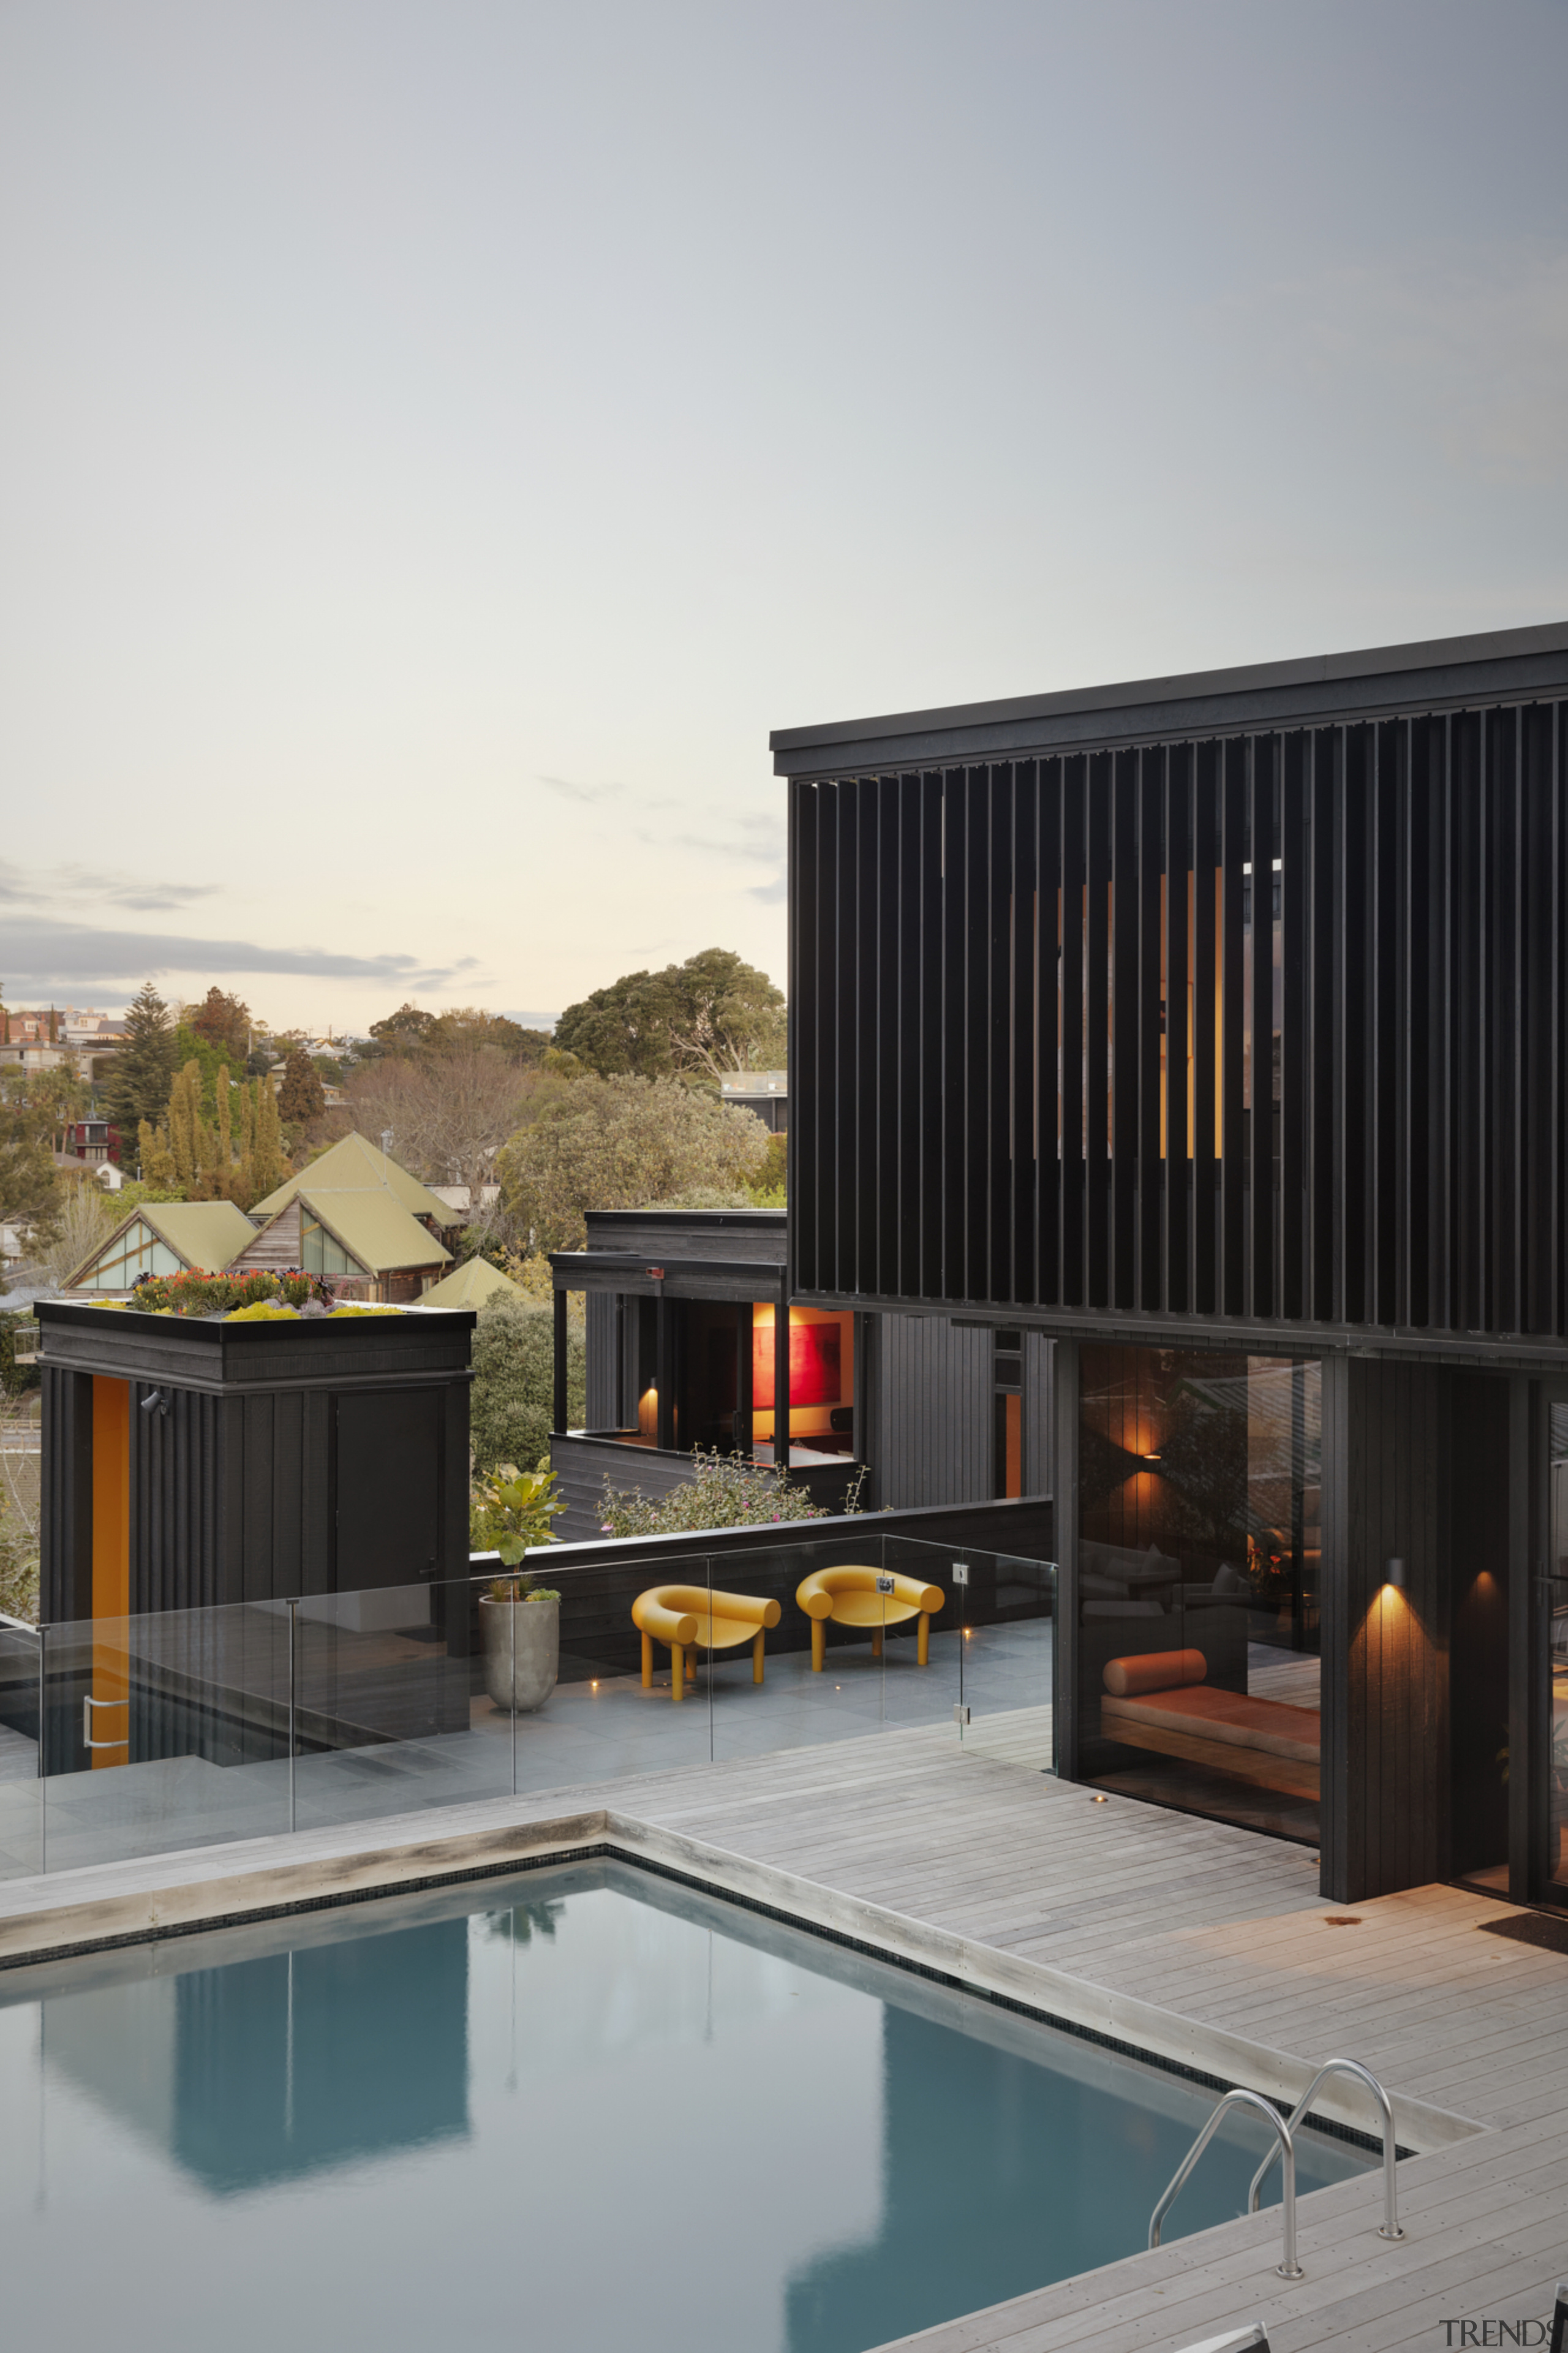 1970's home becomes a modern entertainer's dream - architecture, backyard, building, courtyard, design, estate, facade, furniture, home, house, interior design, property, real estate, residential area, roof, room, sky, swimming pool, gray, black